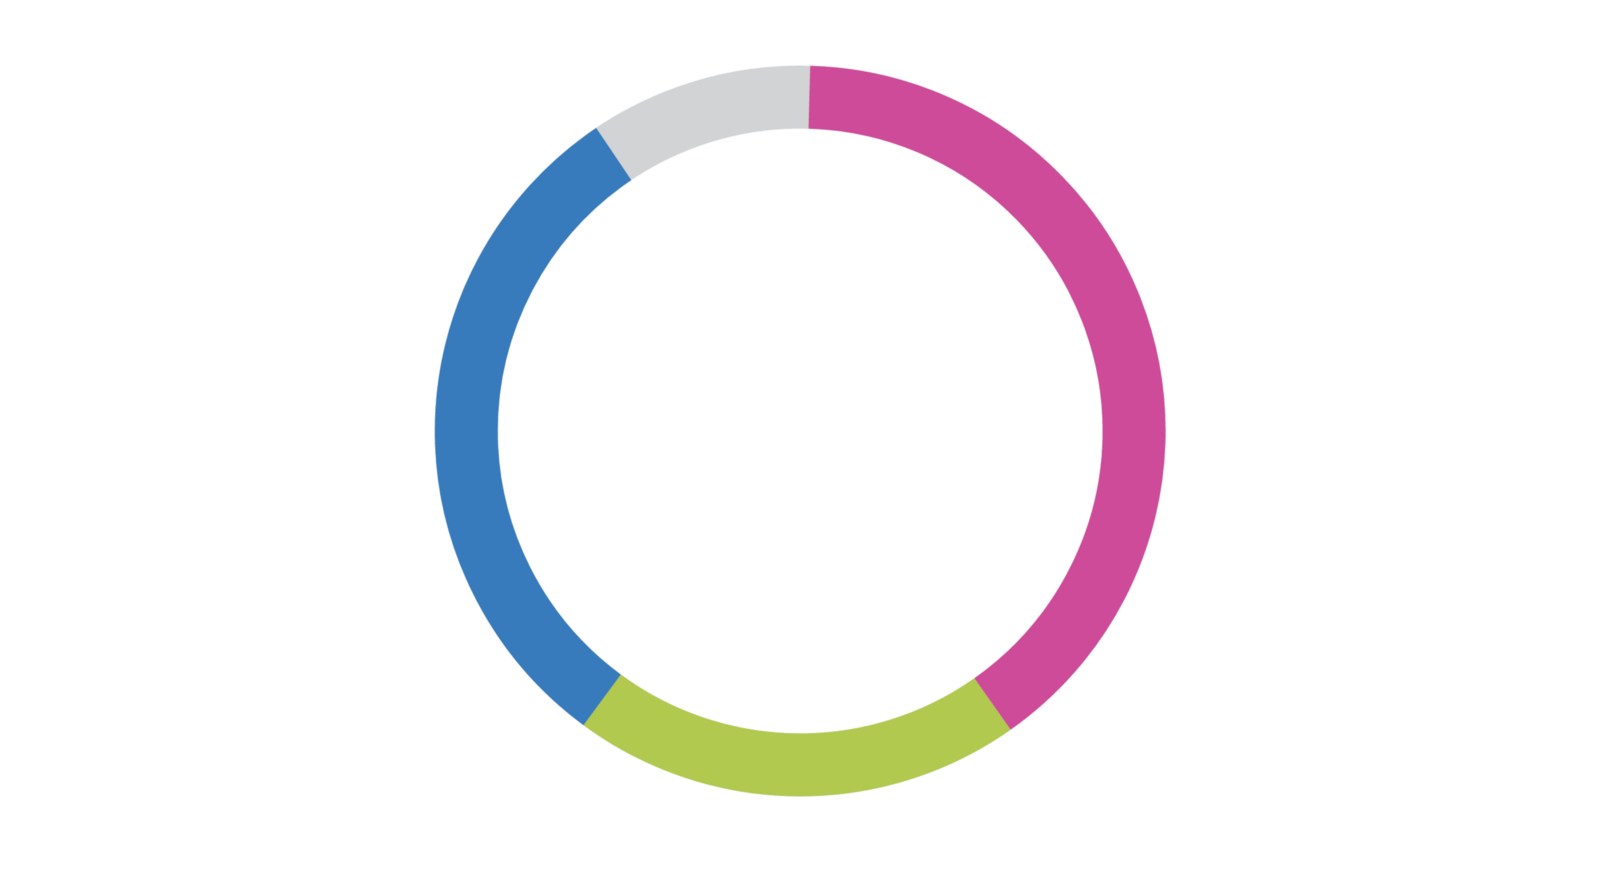 scratch made svg donut pie charts in html5 mark caron medium